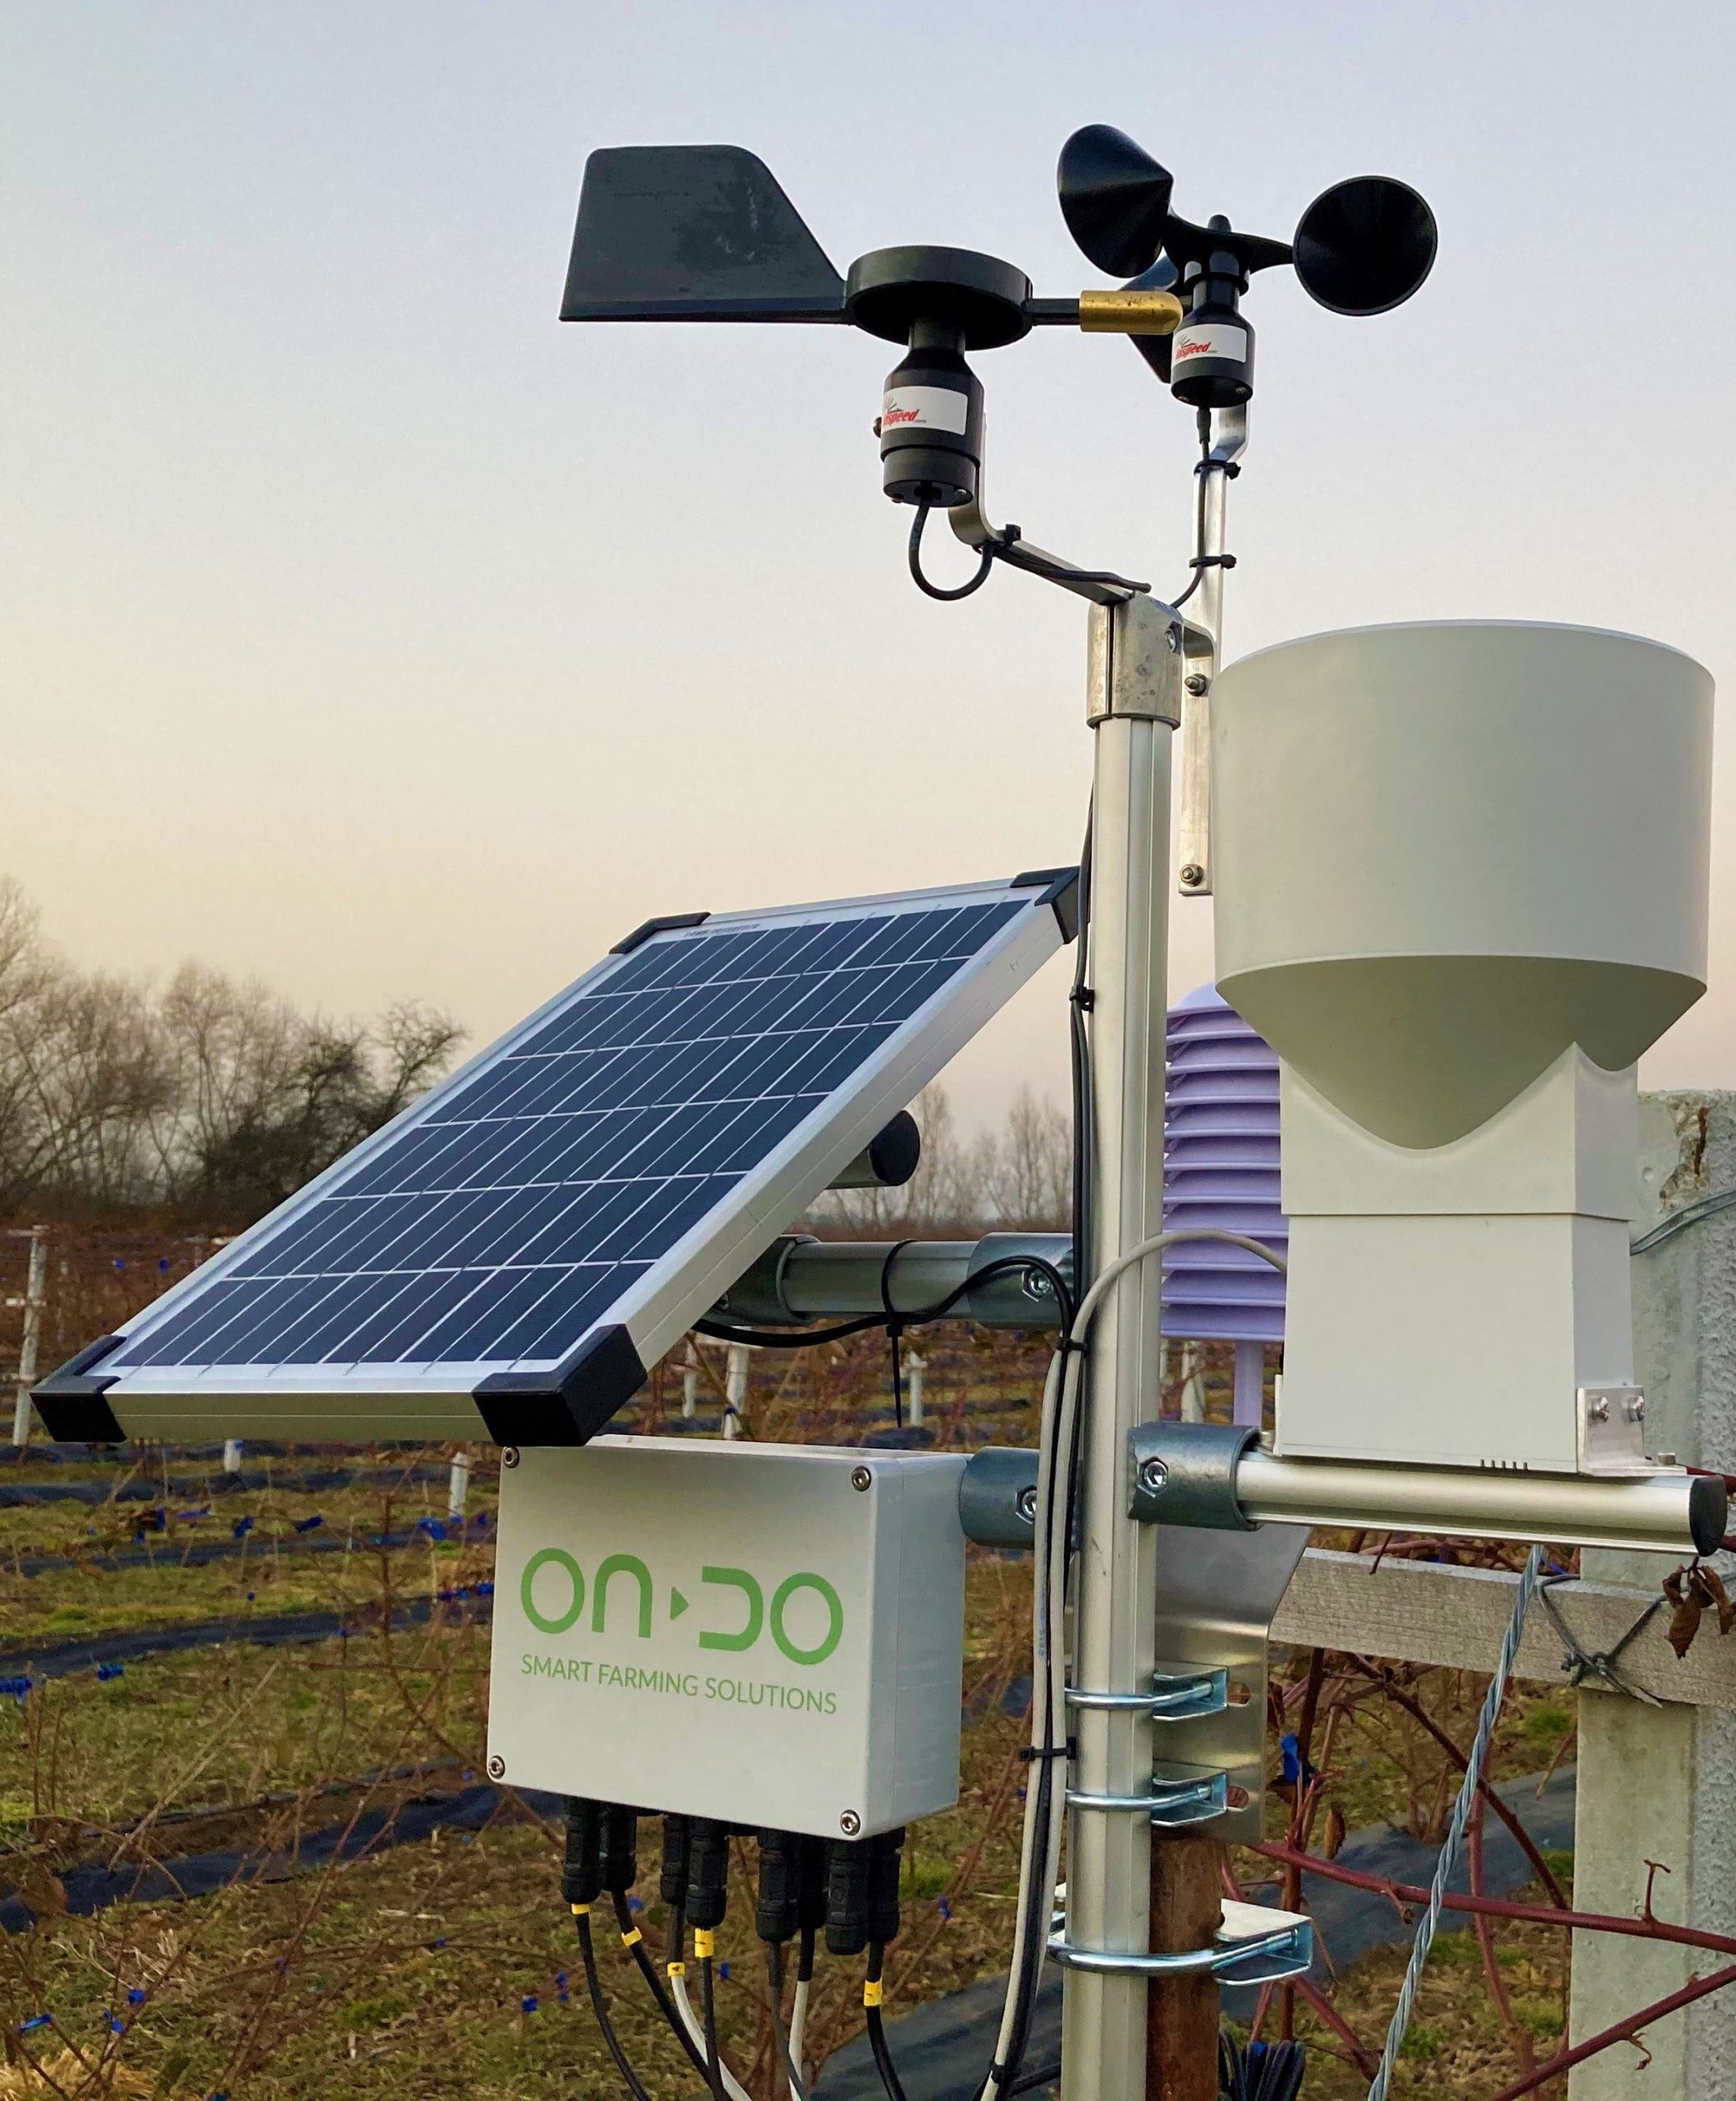 Precision irrigation thanks to ONDO Weather - ONDO agricultural weather station